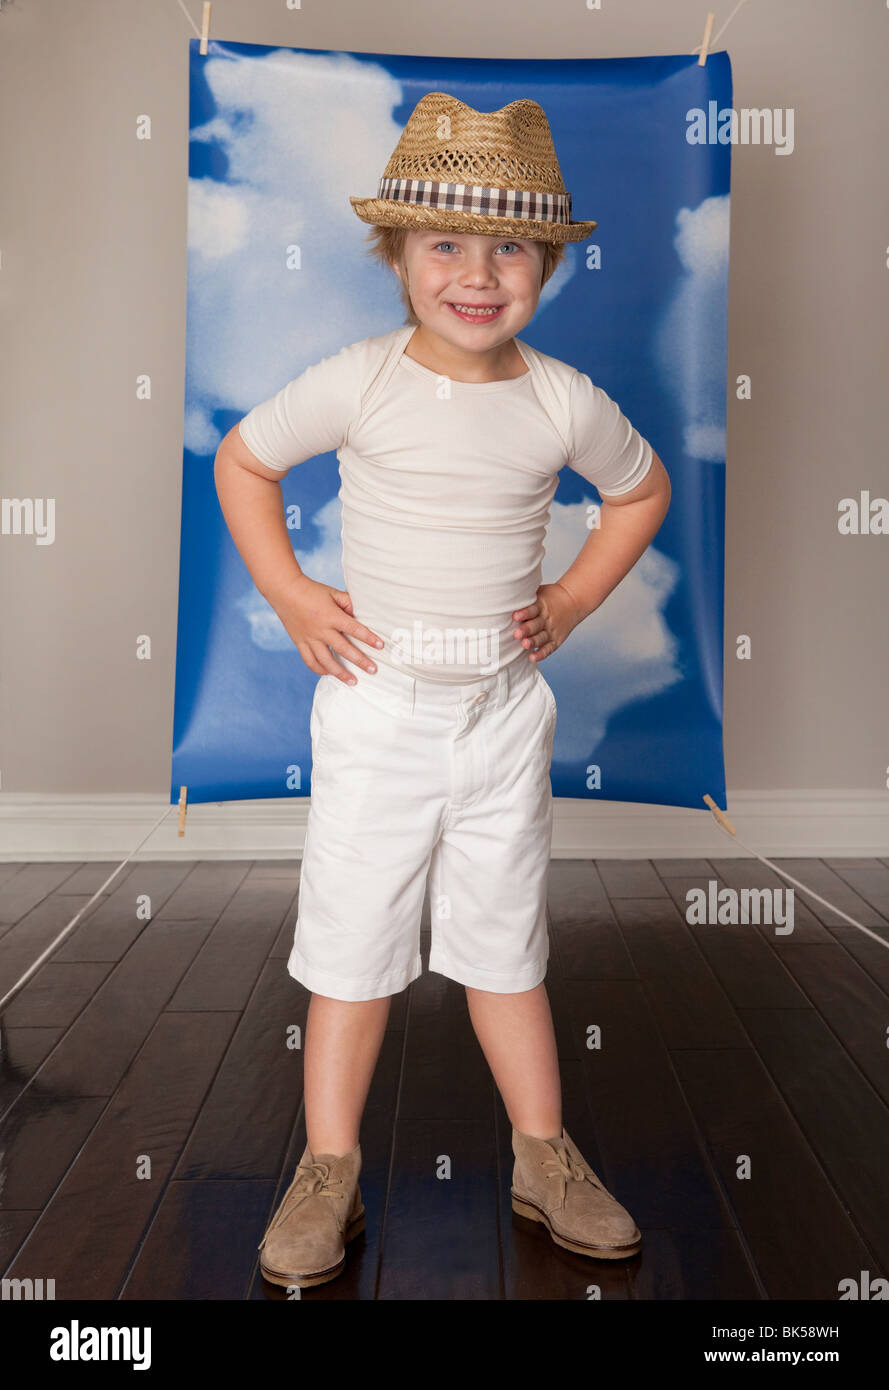 Happy boy in front of blue sky back drop - Stock Image